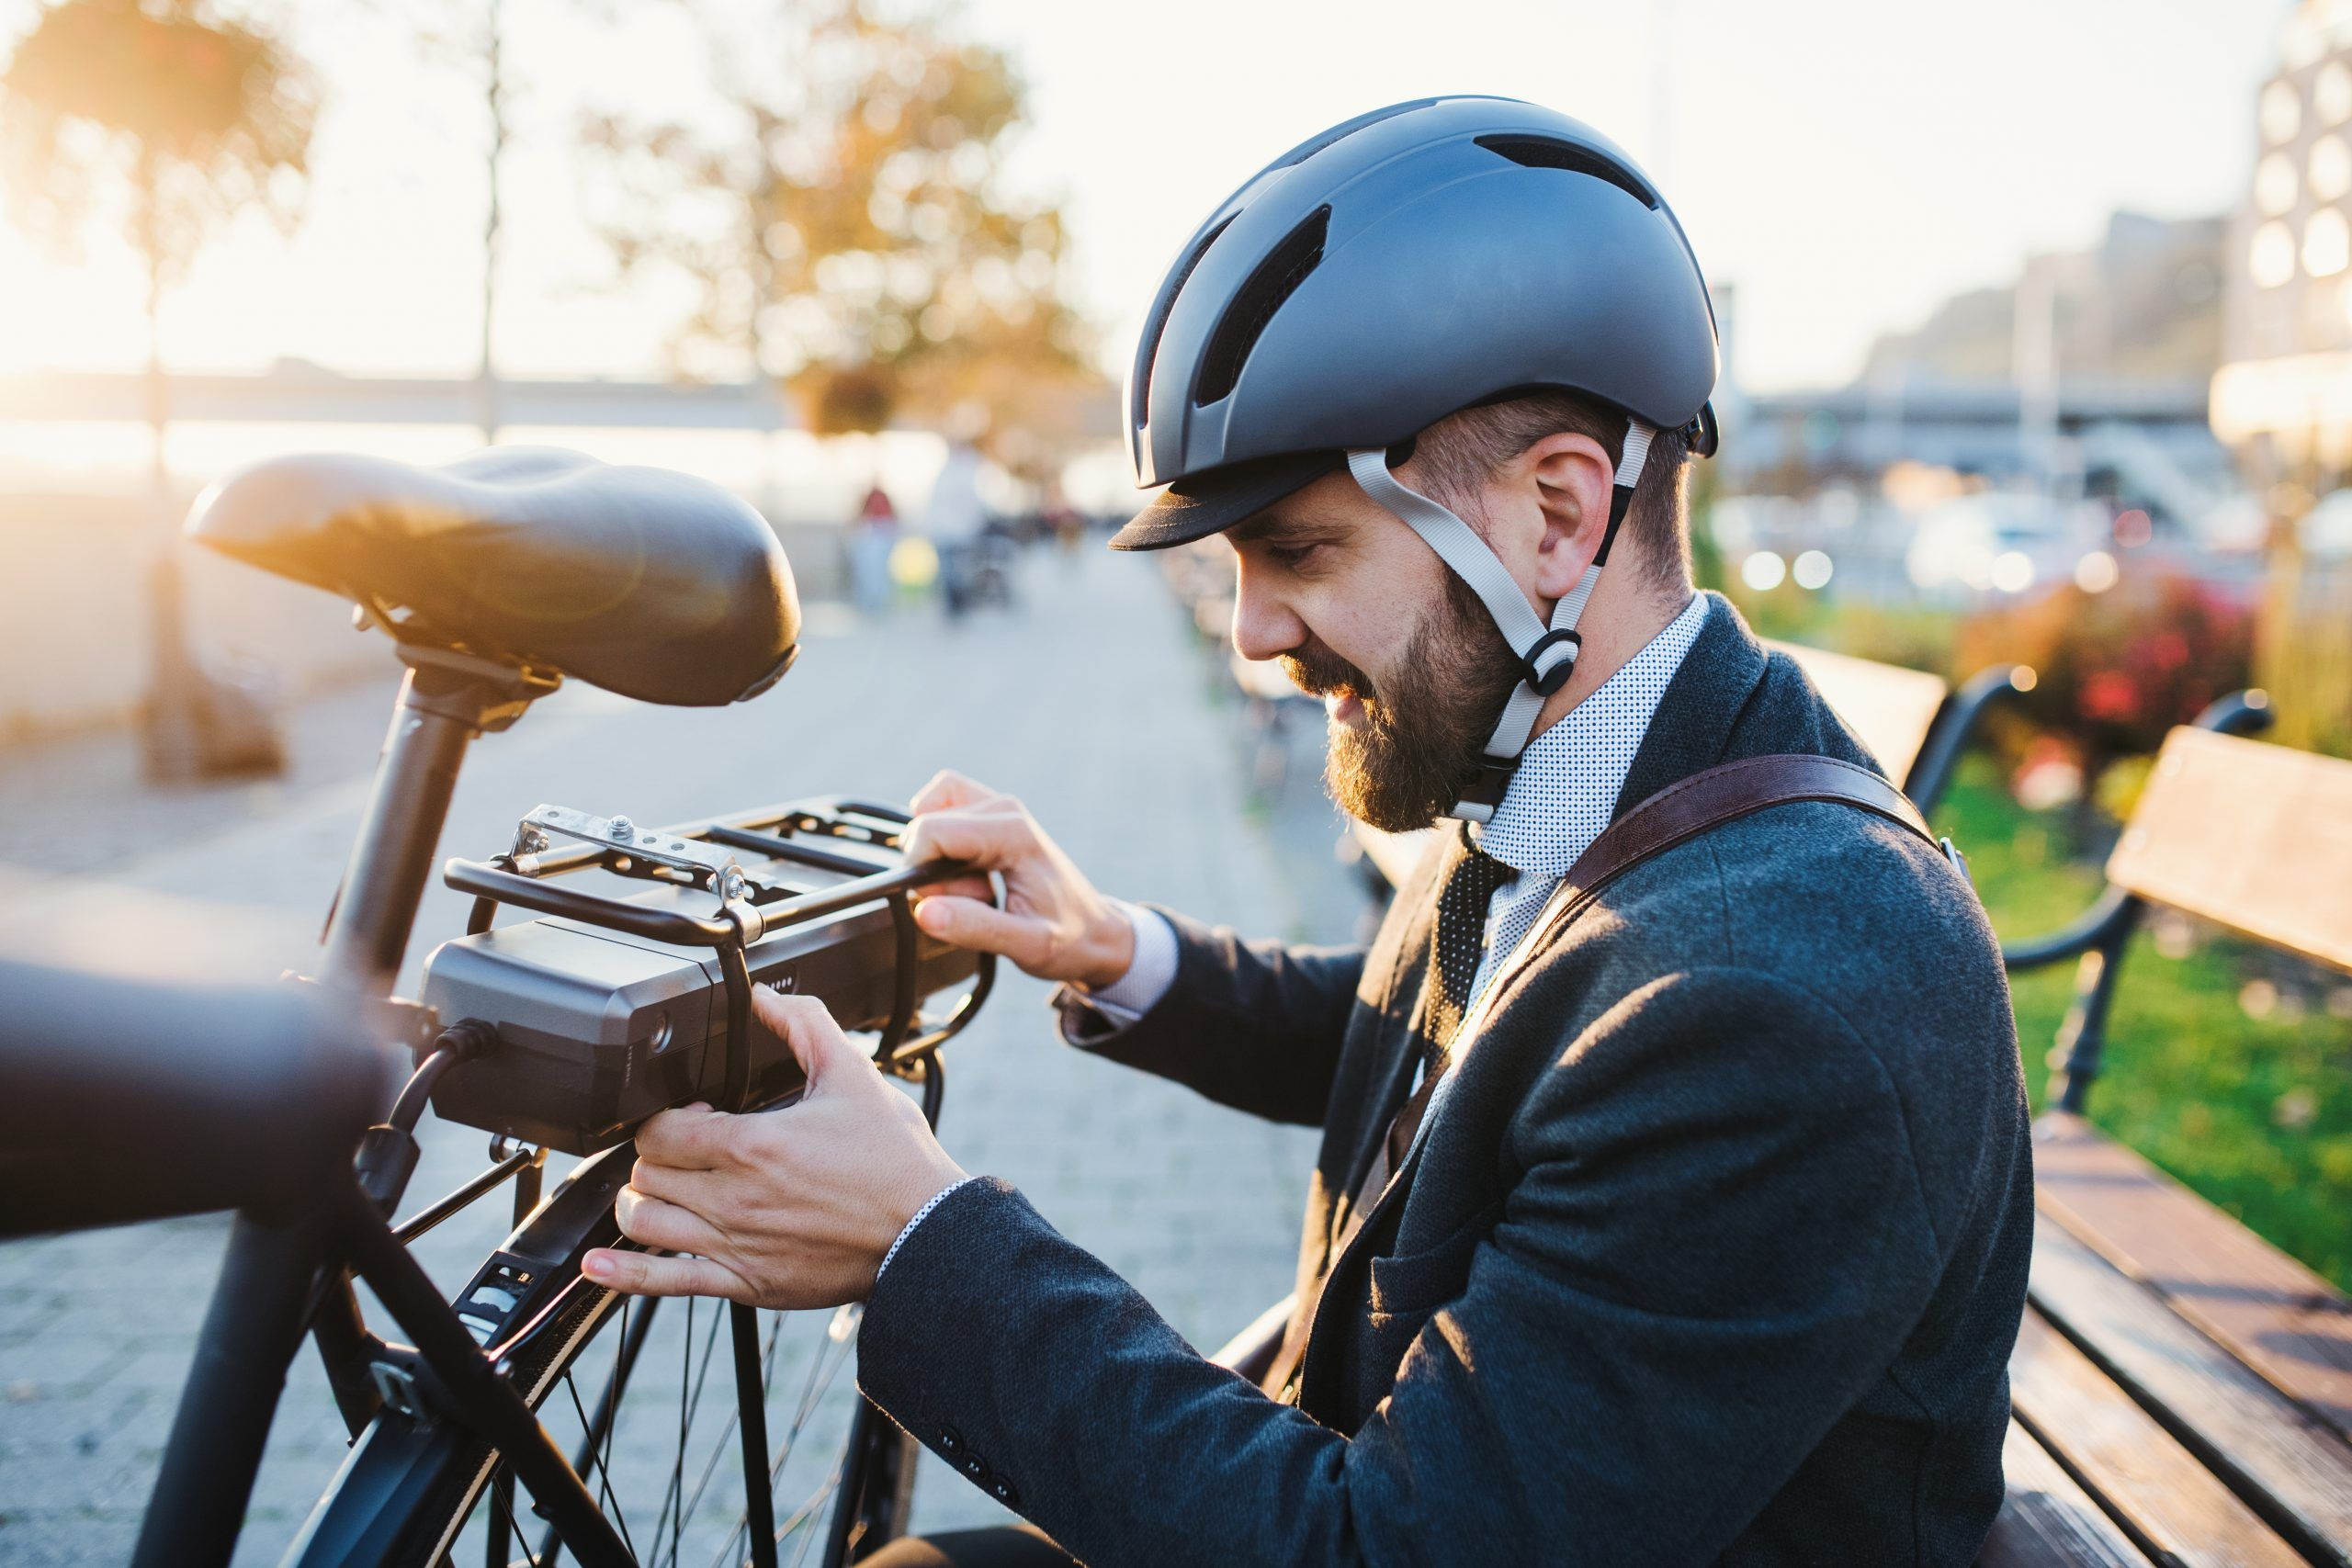 Commuter in suit and cycling helmet checking battery on electric bicycle